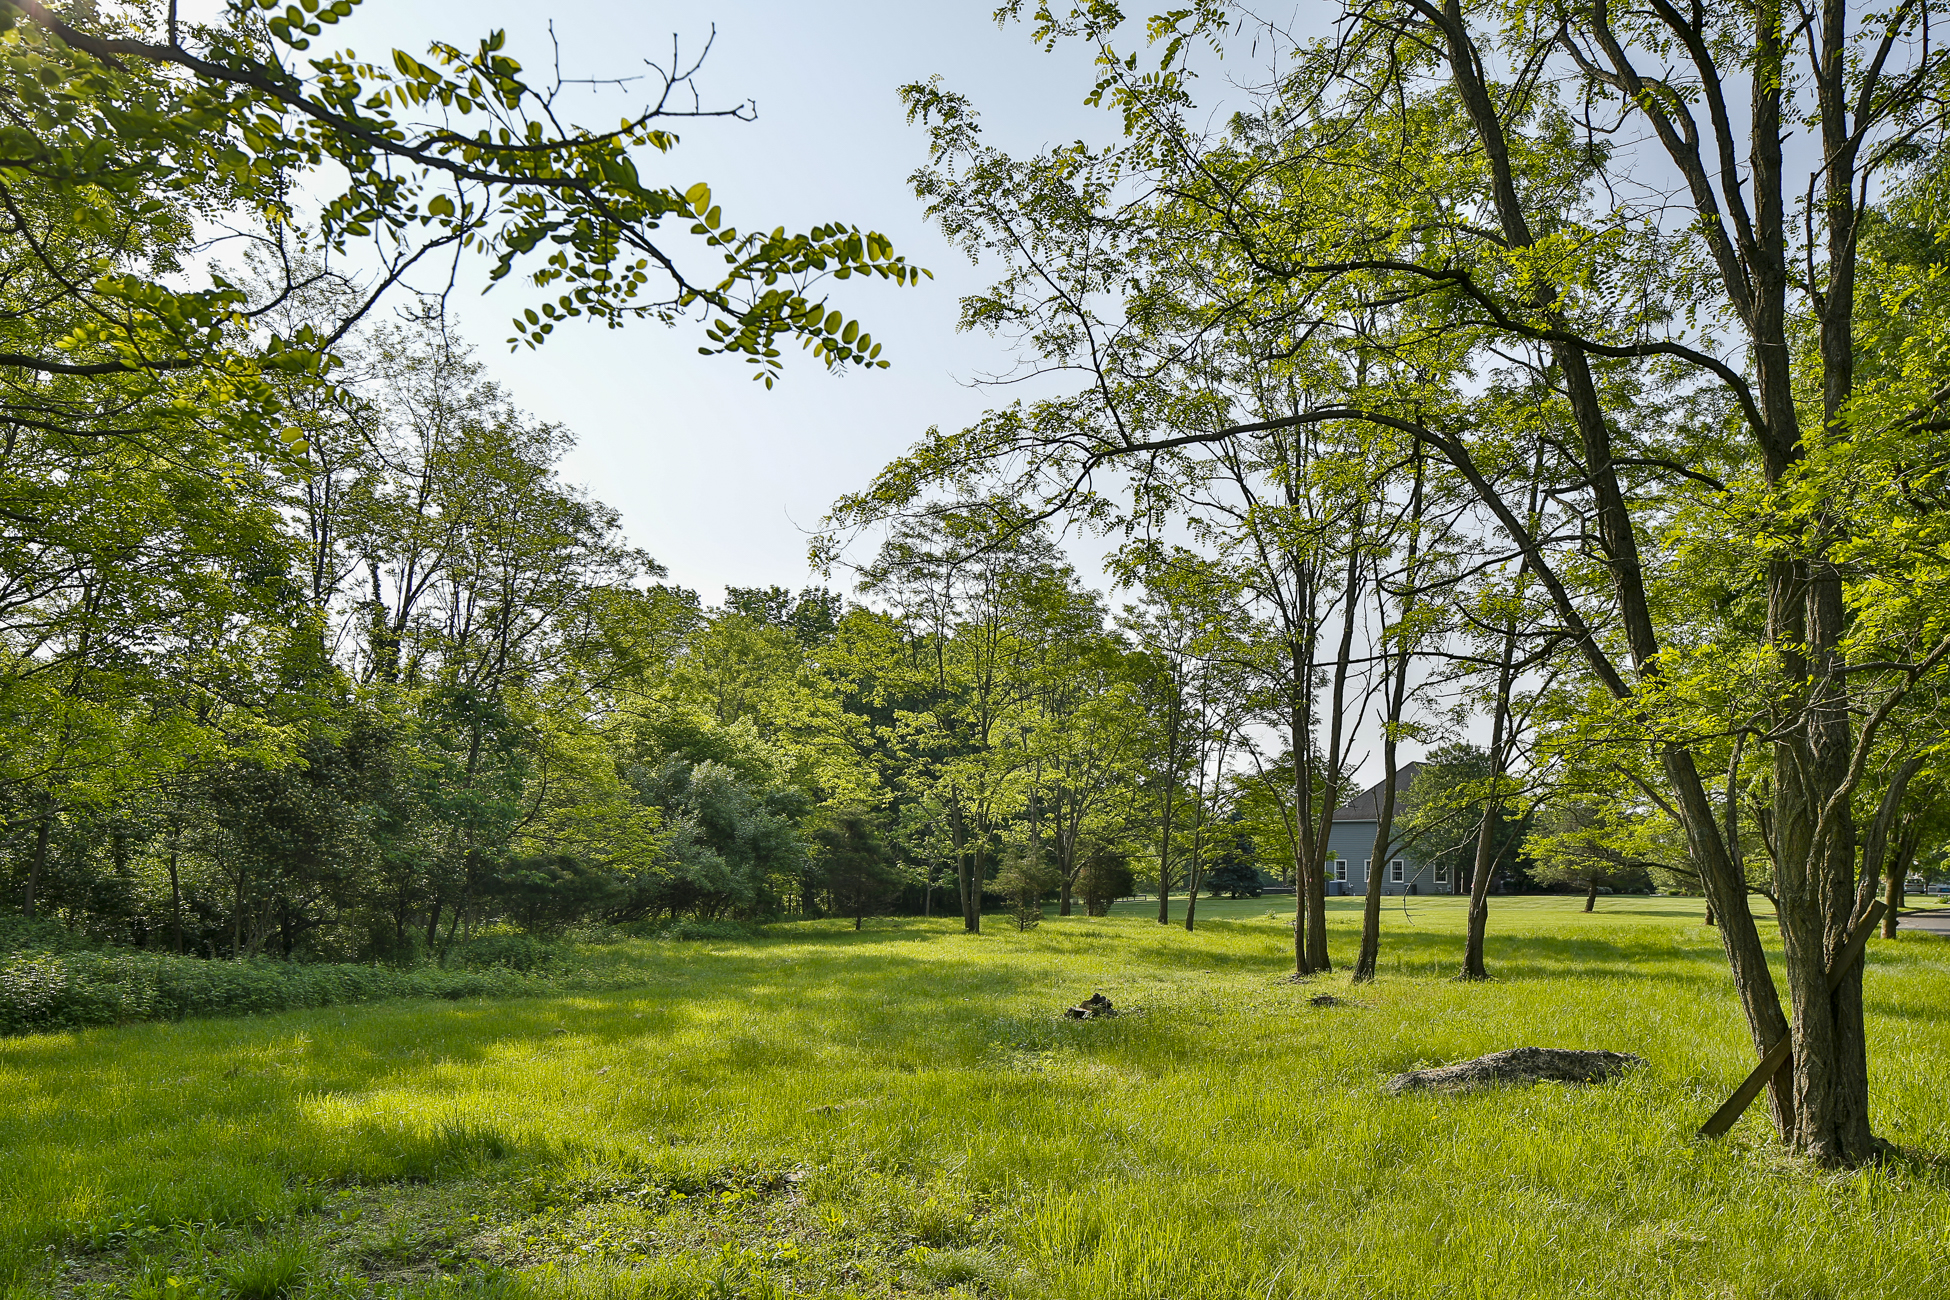 Additional photo for property listing at Ready to Build Lot in Lawrence Township 16 Buckingham Drive 普林斯顿, 新泽西州 08540 美国